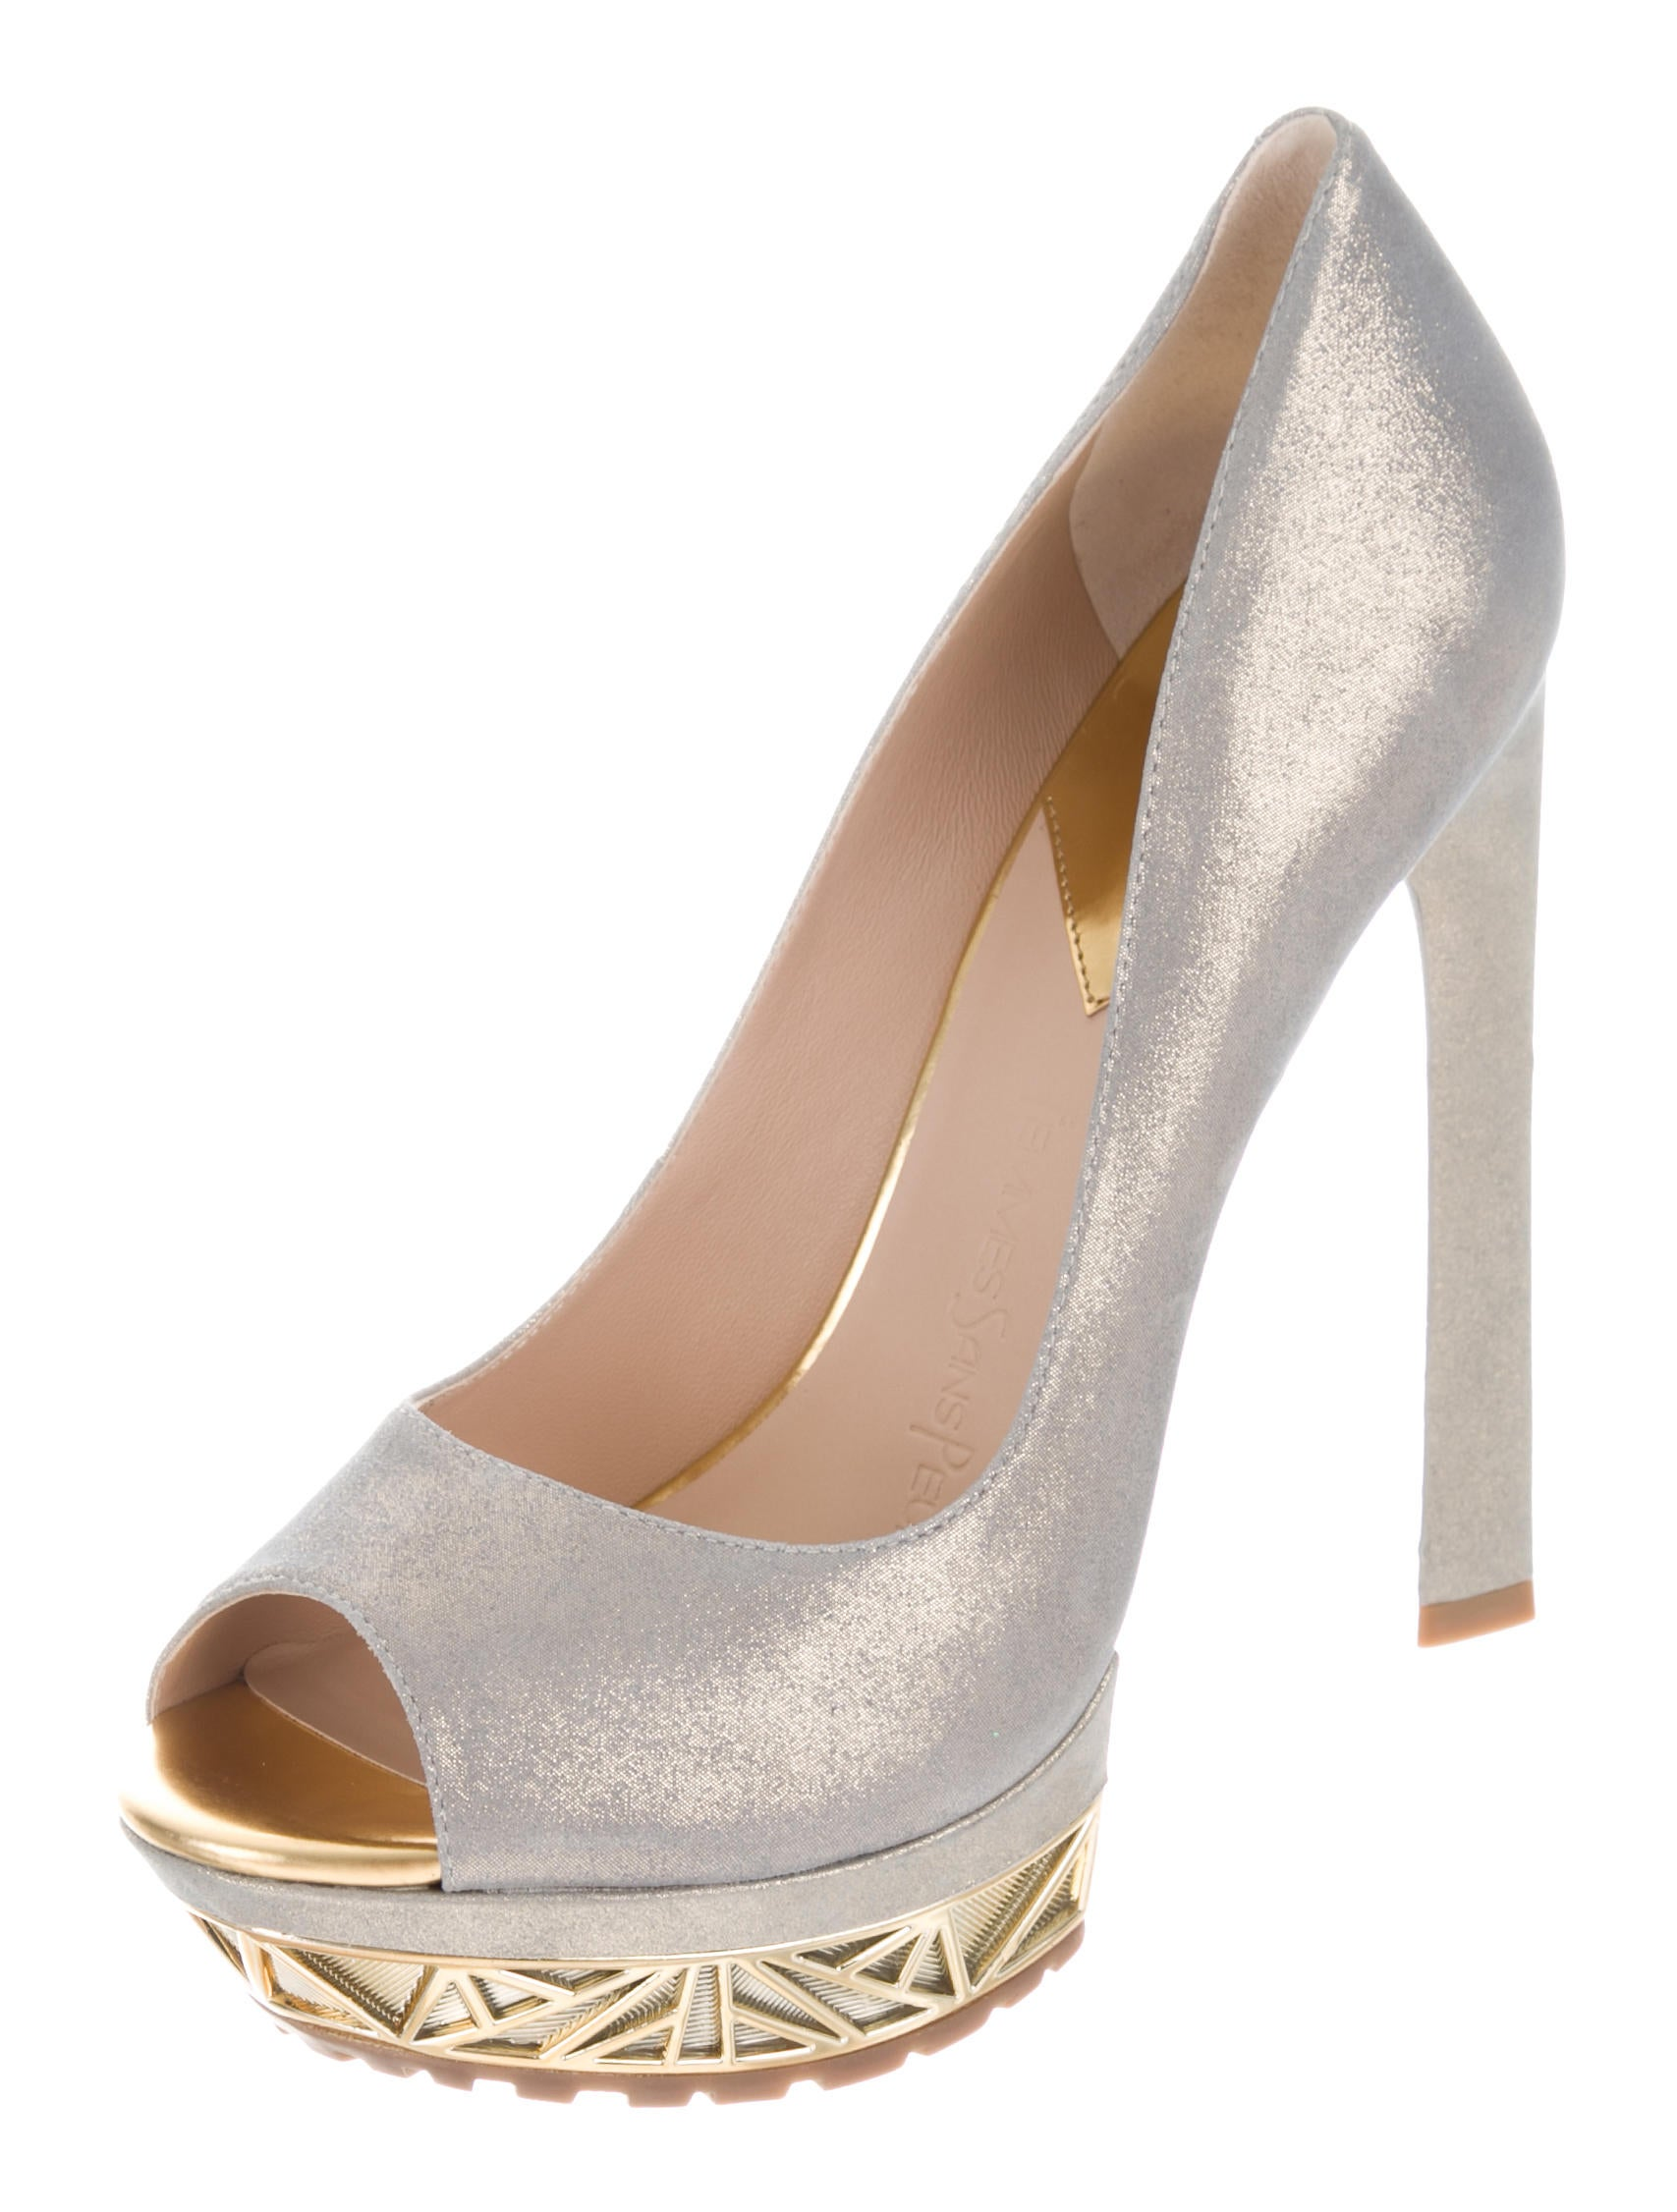 amazon sale online cheap sale clearance Femmes Sans Peur 2017 Cora Pumps w/ Tags outlet locations cheap price outlet best store to get clearance order BOODucTT0j